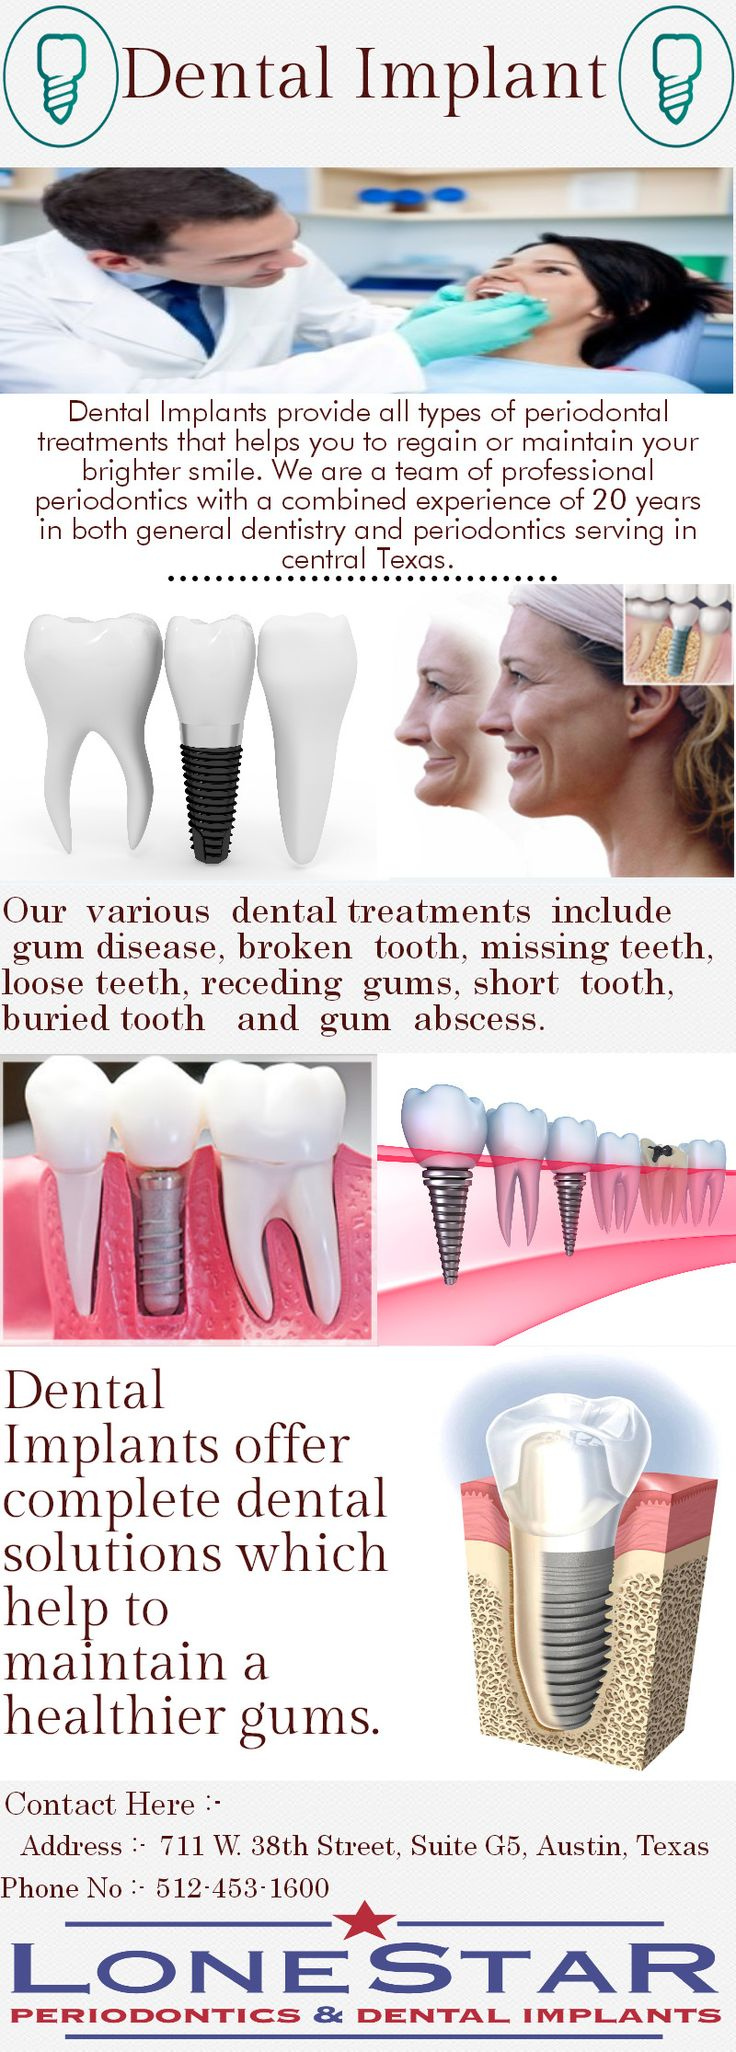 Latest technologies equipments and machines for dental treatments.